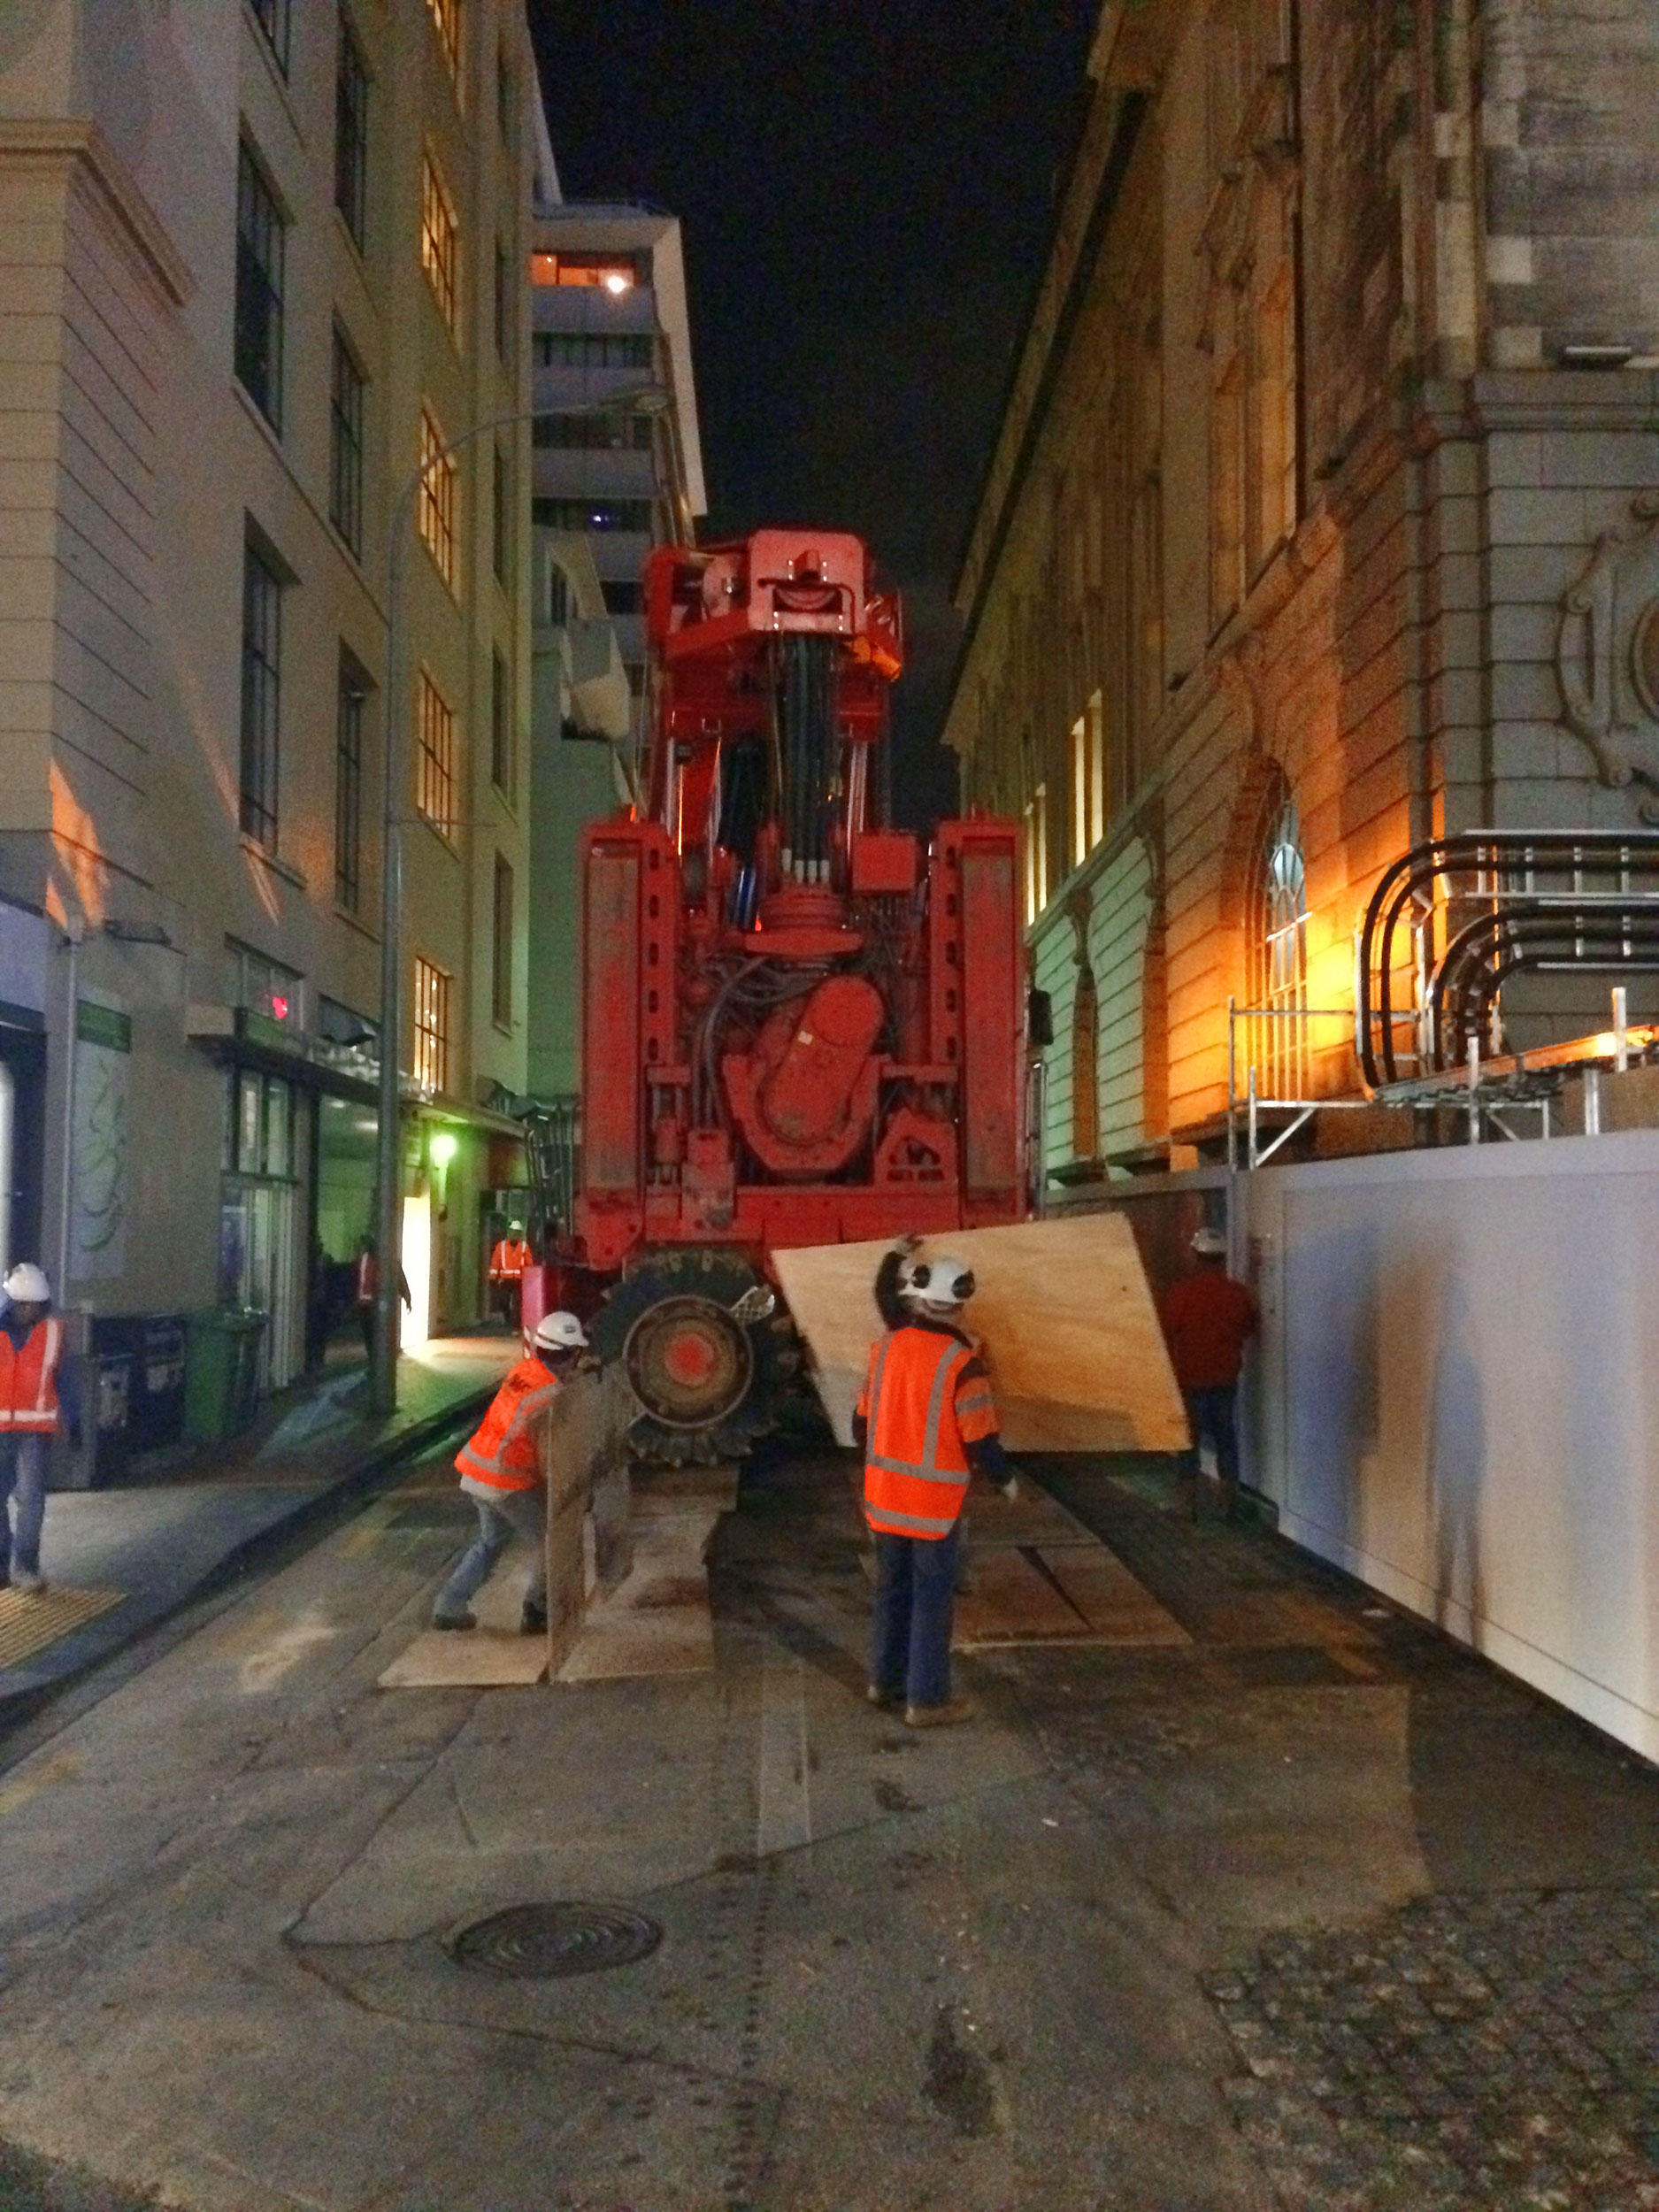 This bright red 90 tonne piling rig named Sandrine worked inside and outside the historic Chief Post Office (Britomart Transport Centre) building until being returned to France in early 2018.